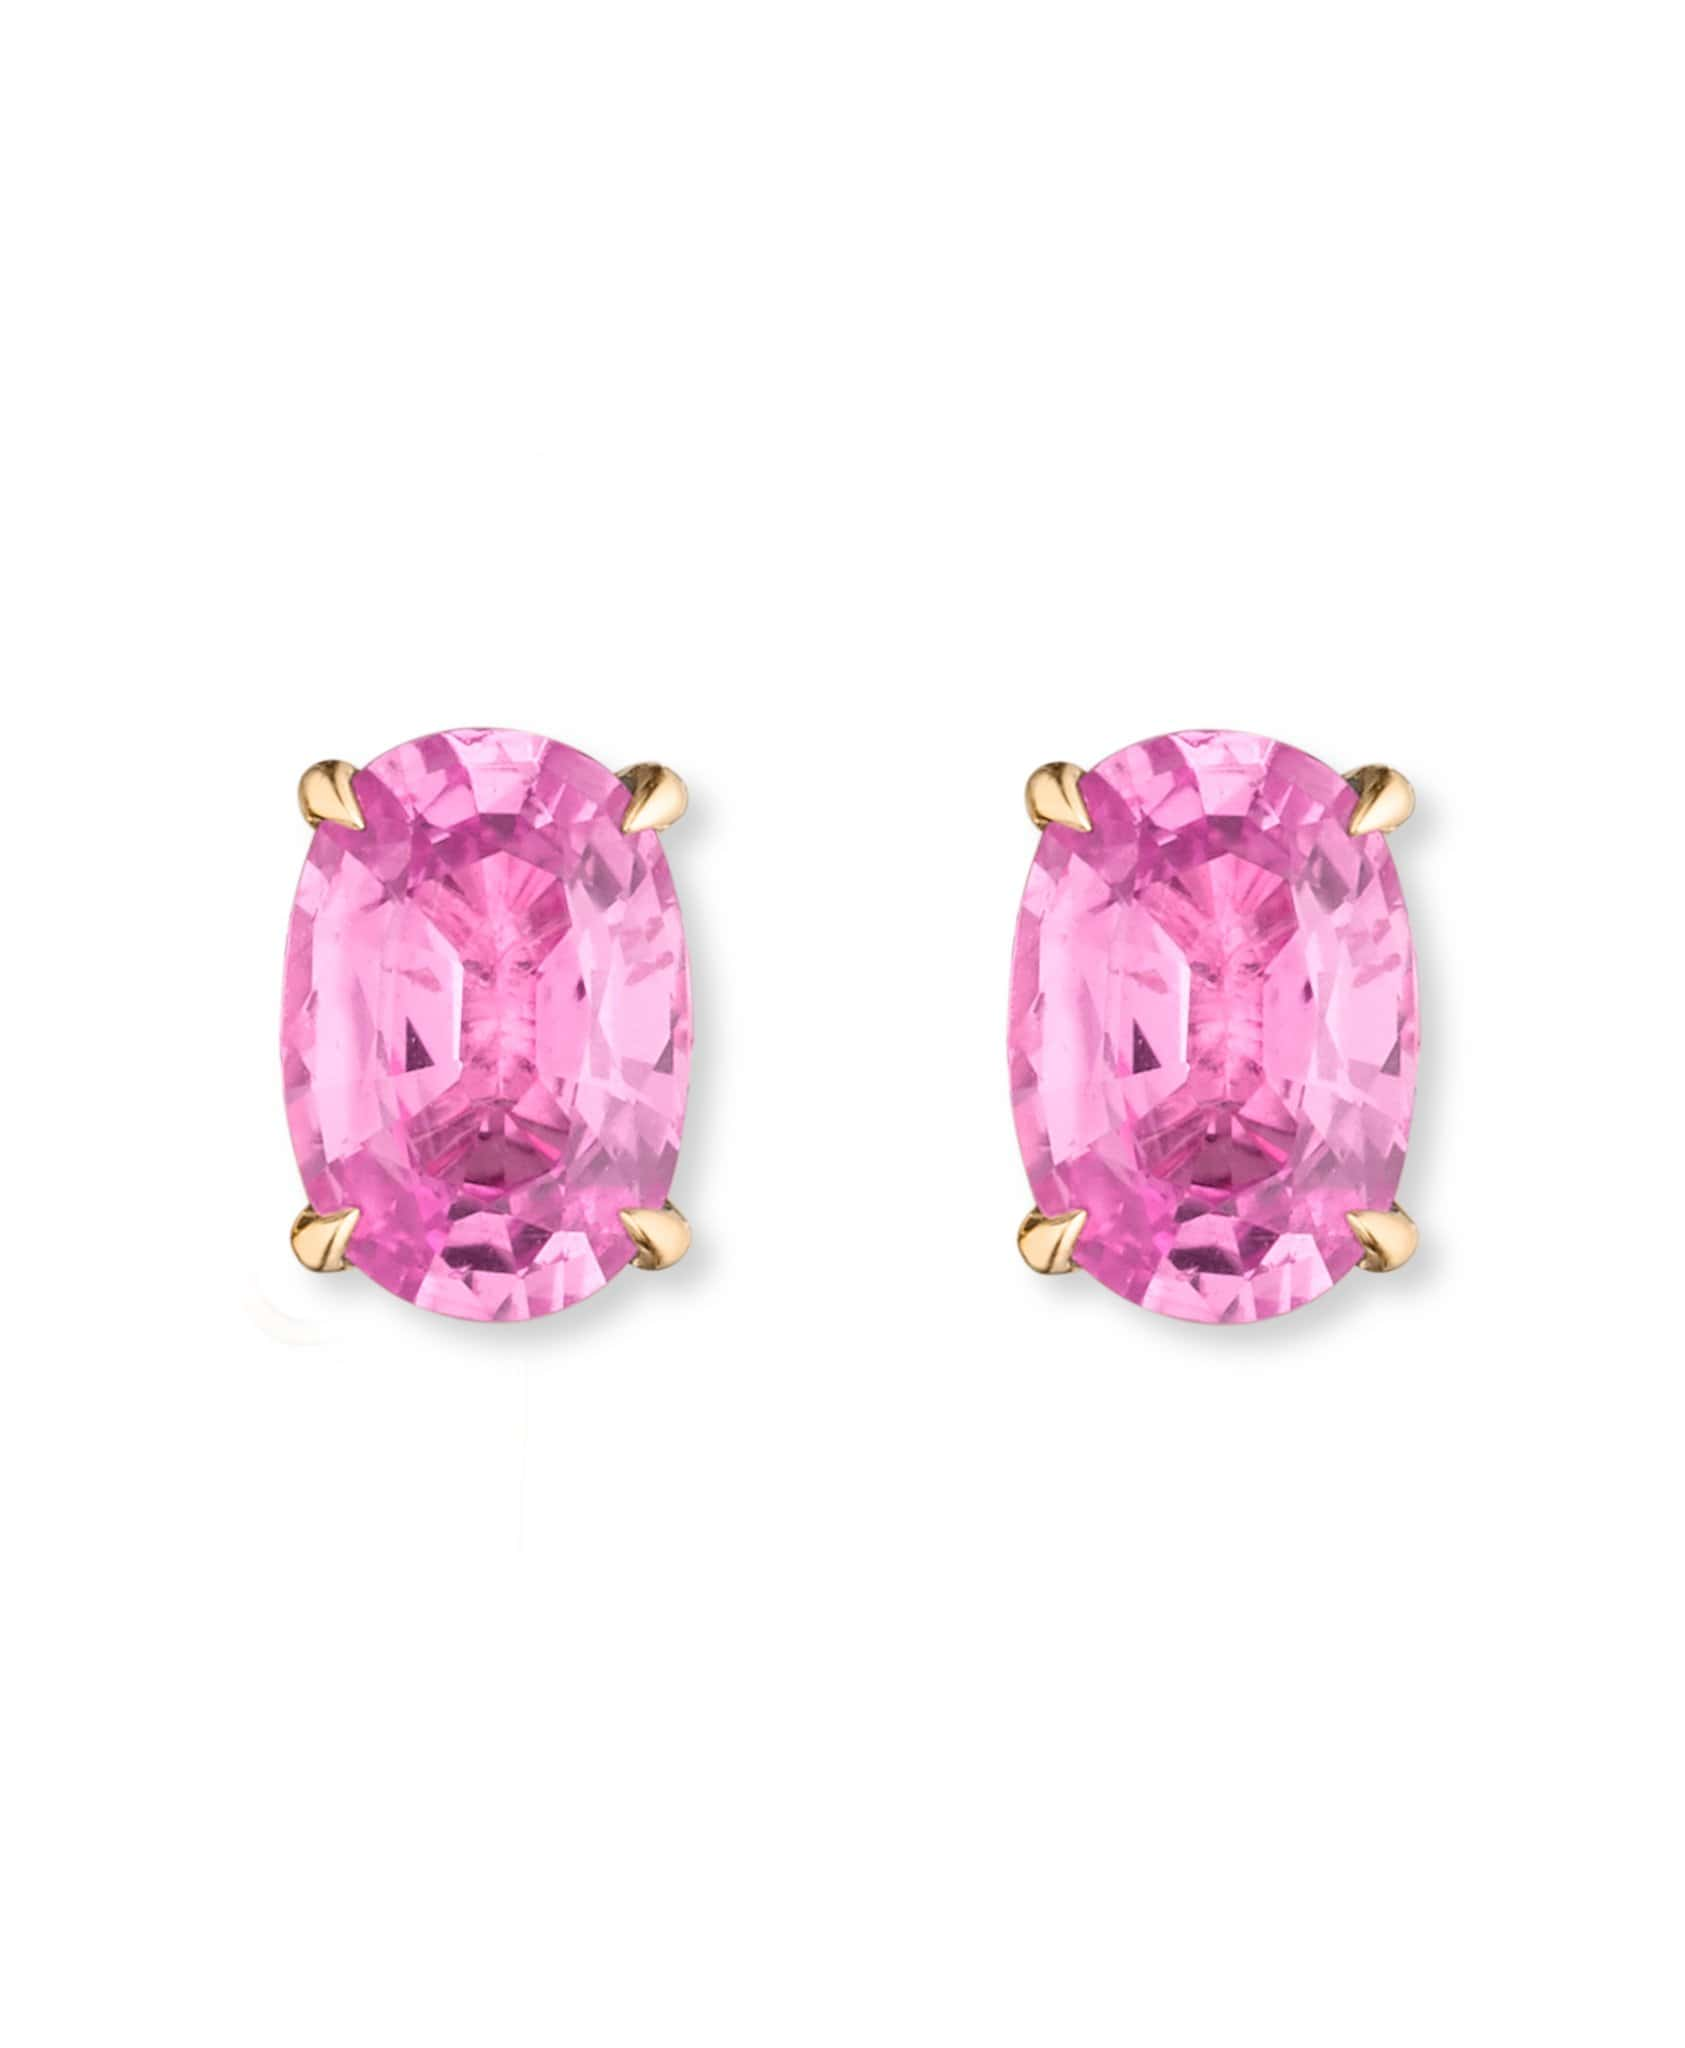 Tara Pink Tourmaline Studs: Discover Luxury Fine Jewelry | Nouvel Heritage || Rose Gold